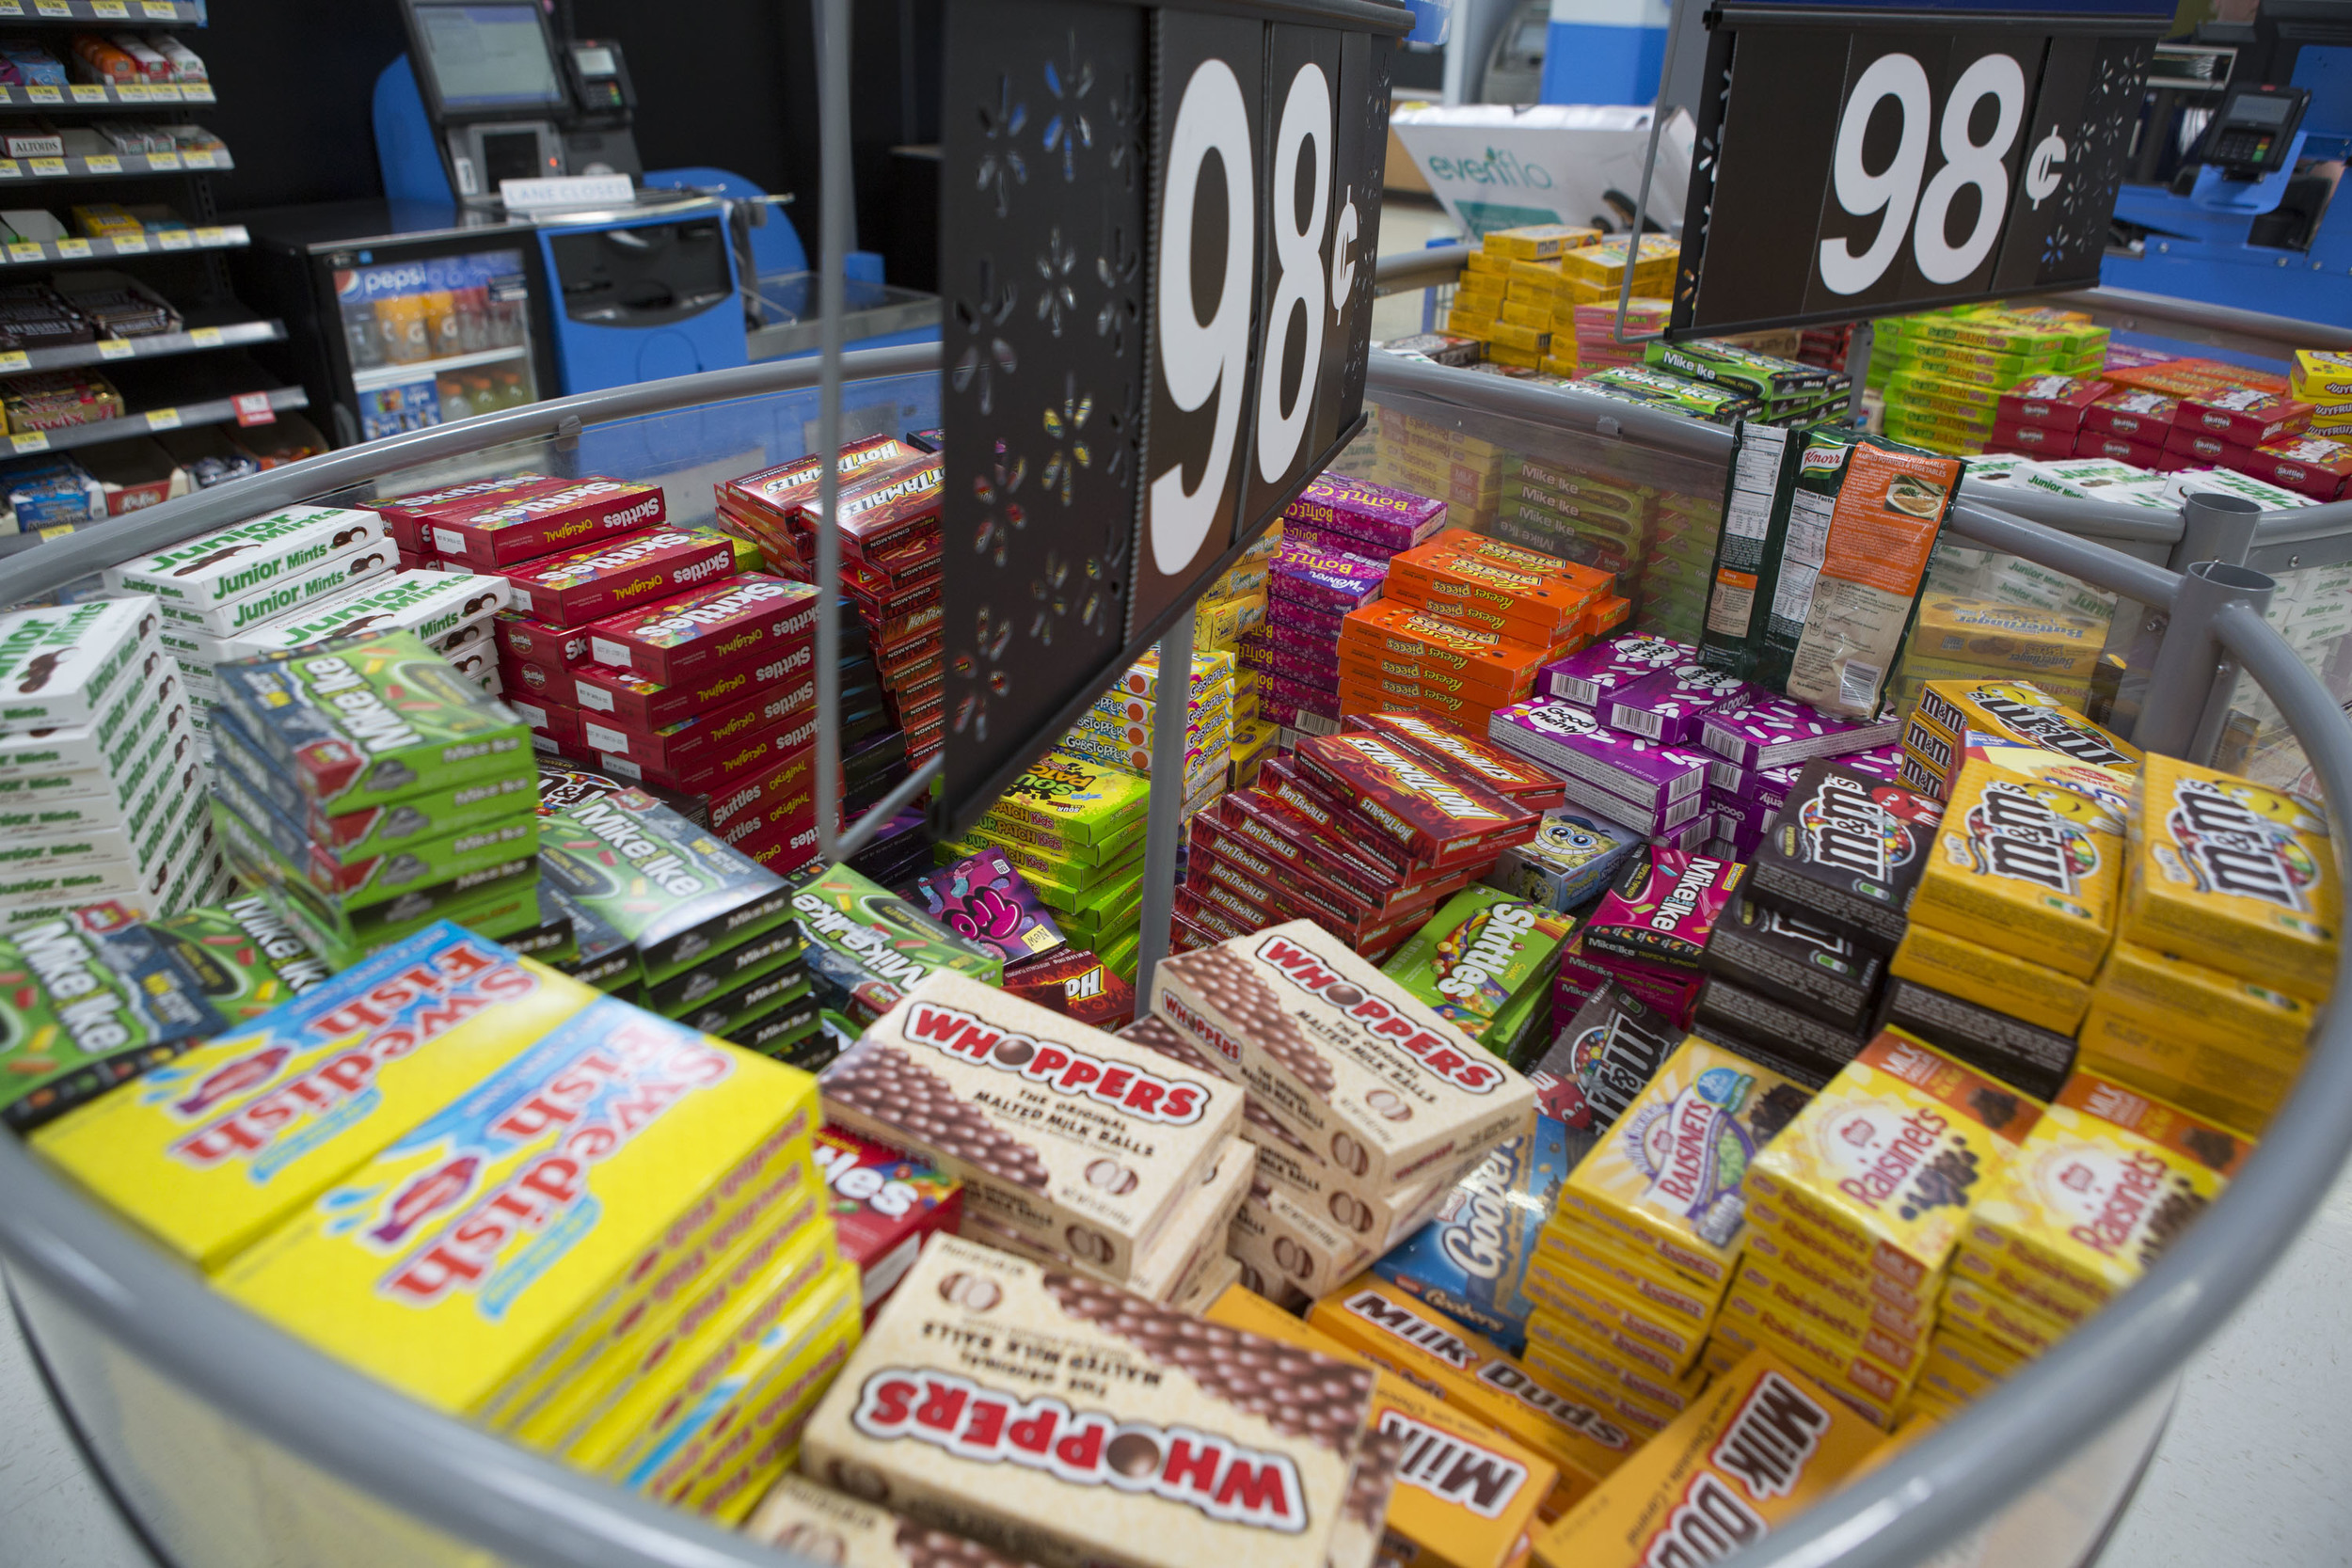 Could you ignore a bin of candy for $0.98?